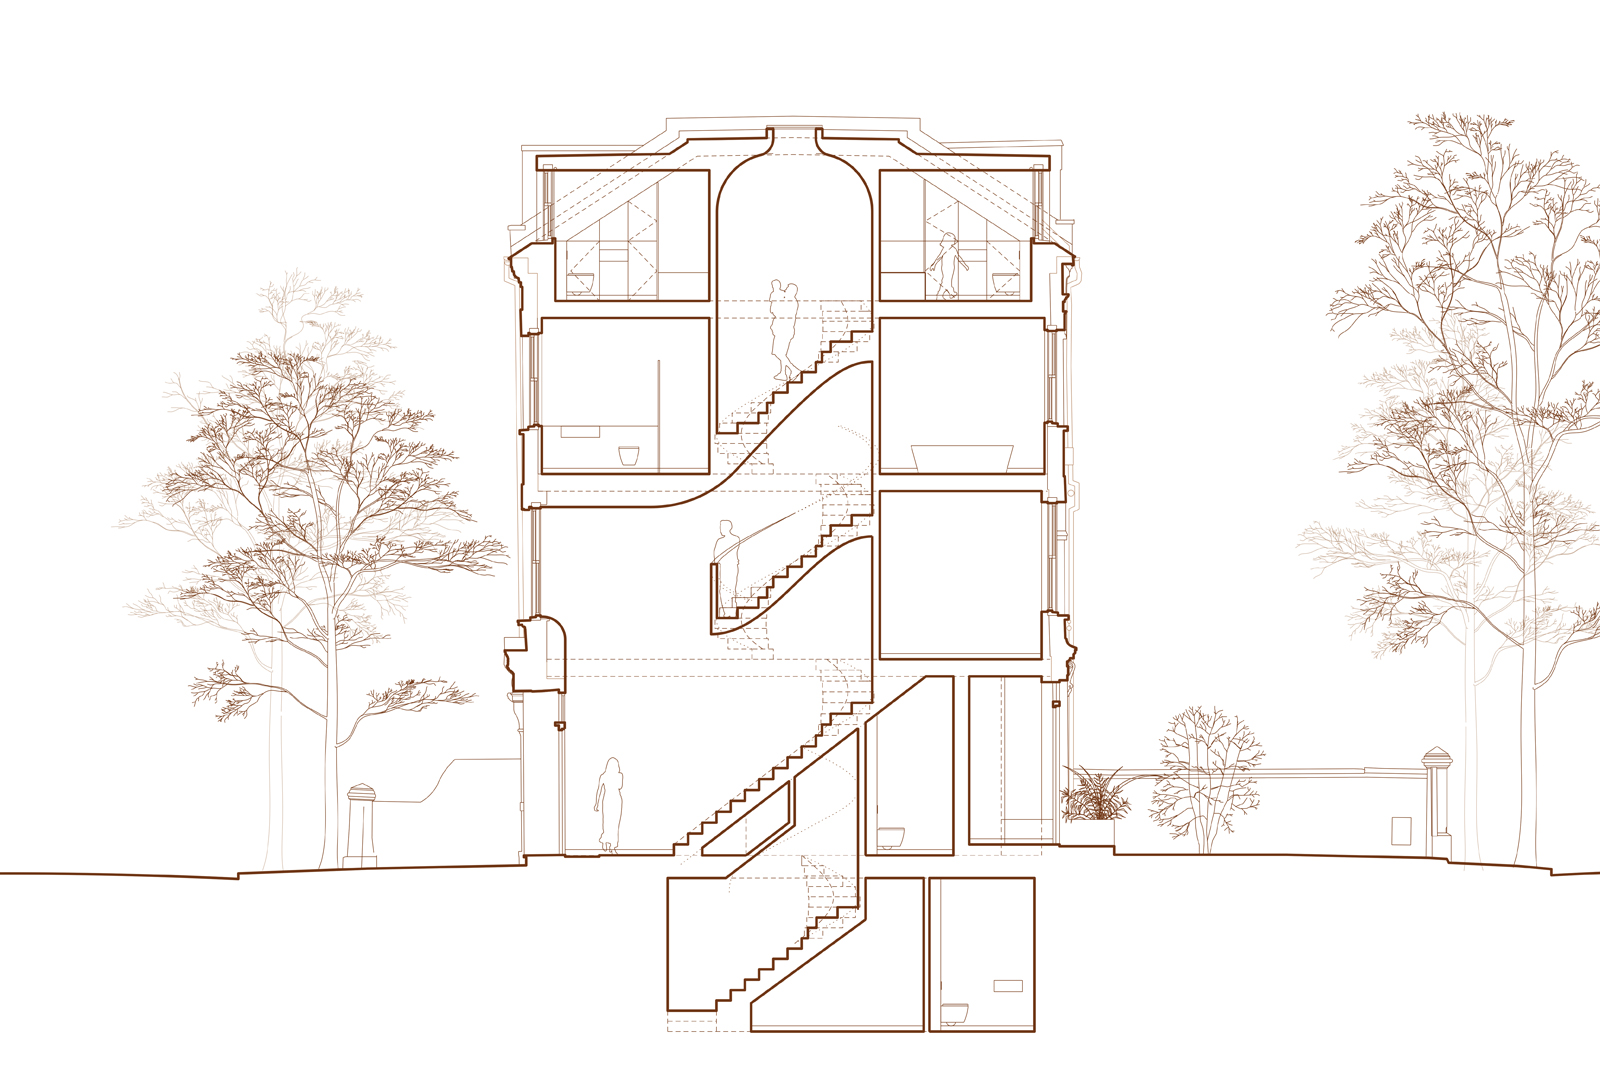 Hamilton Gardens Townhouse: proposed section